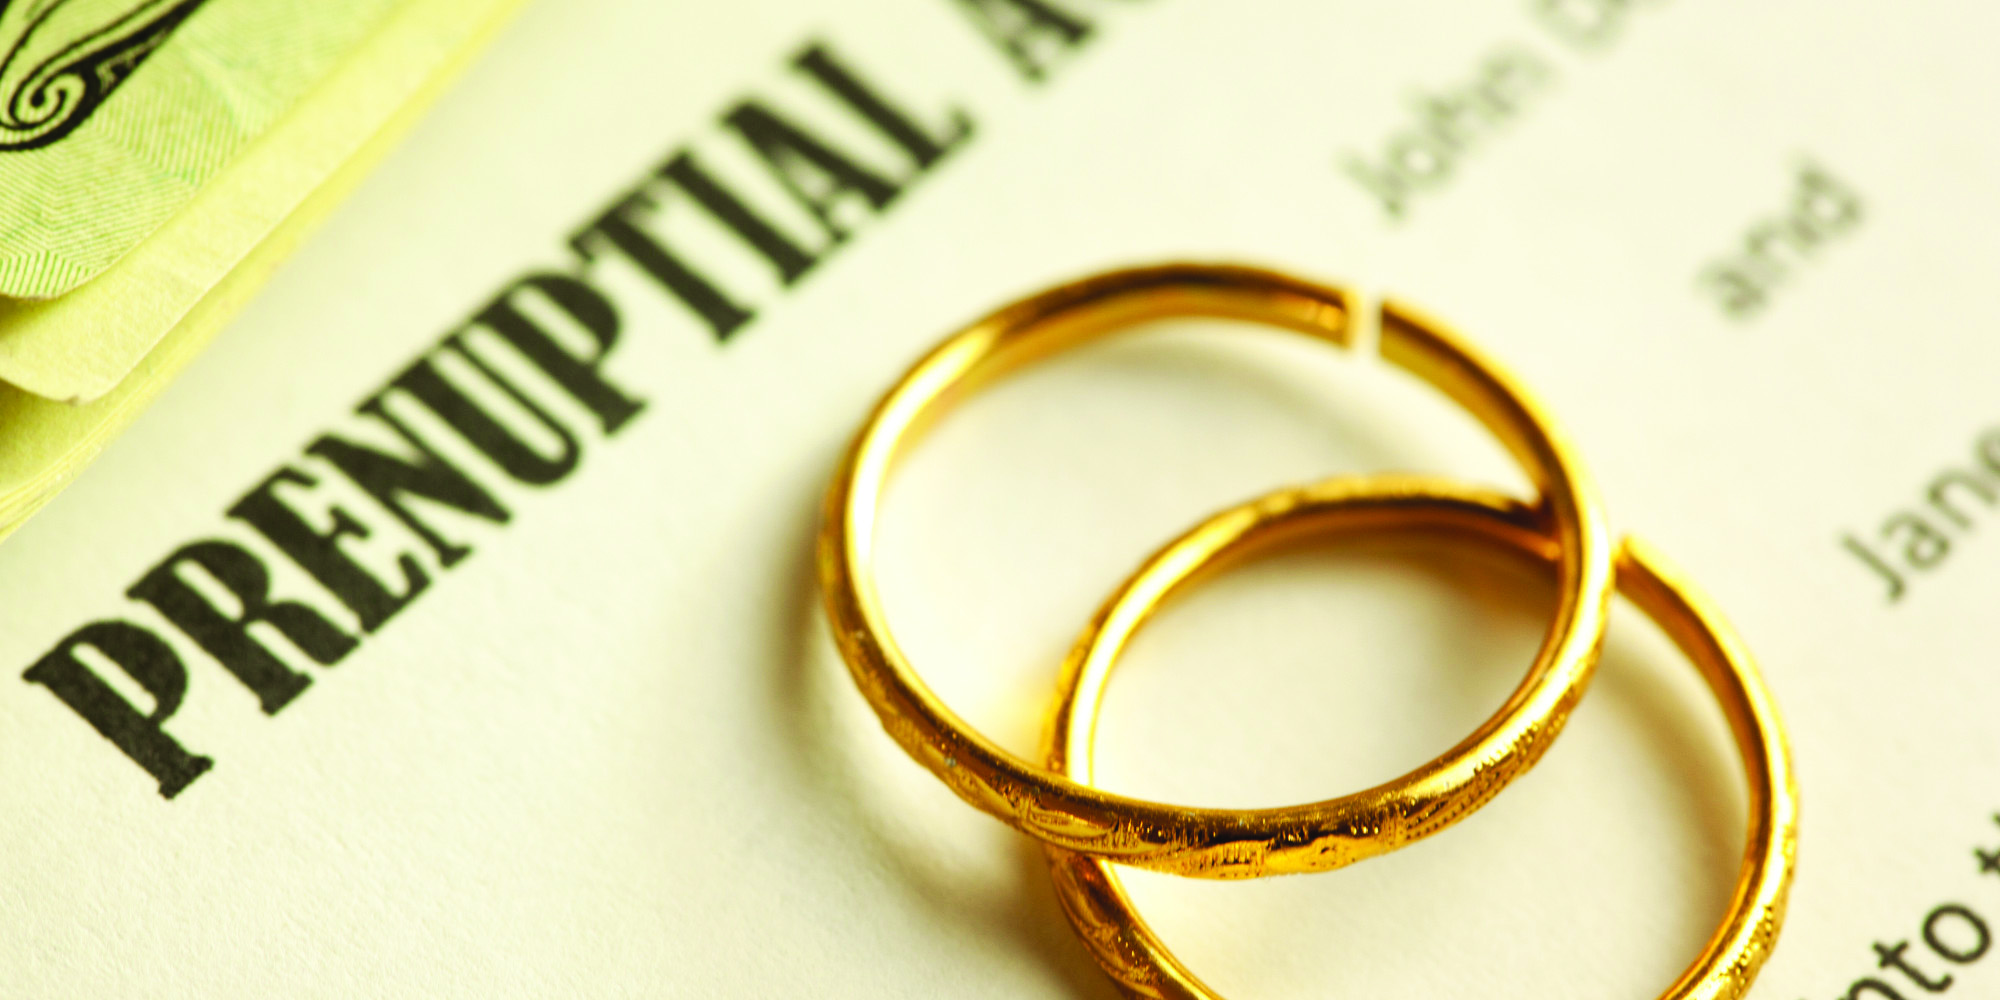 Matrimonial property: In support of prenuptial agreements